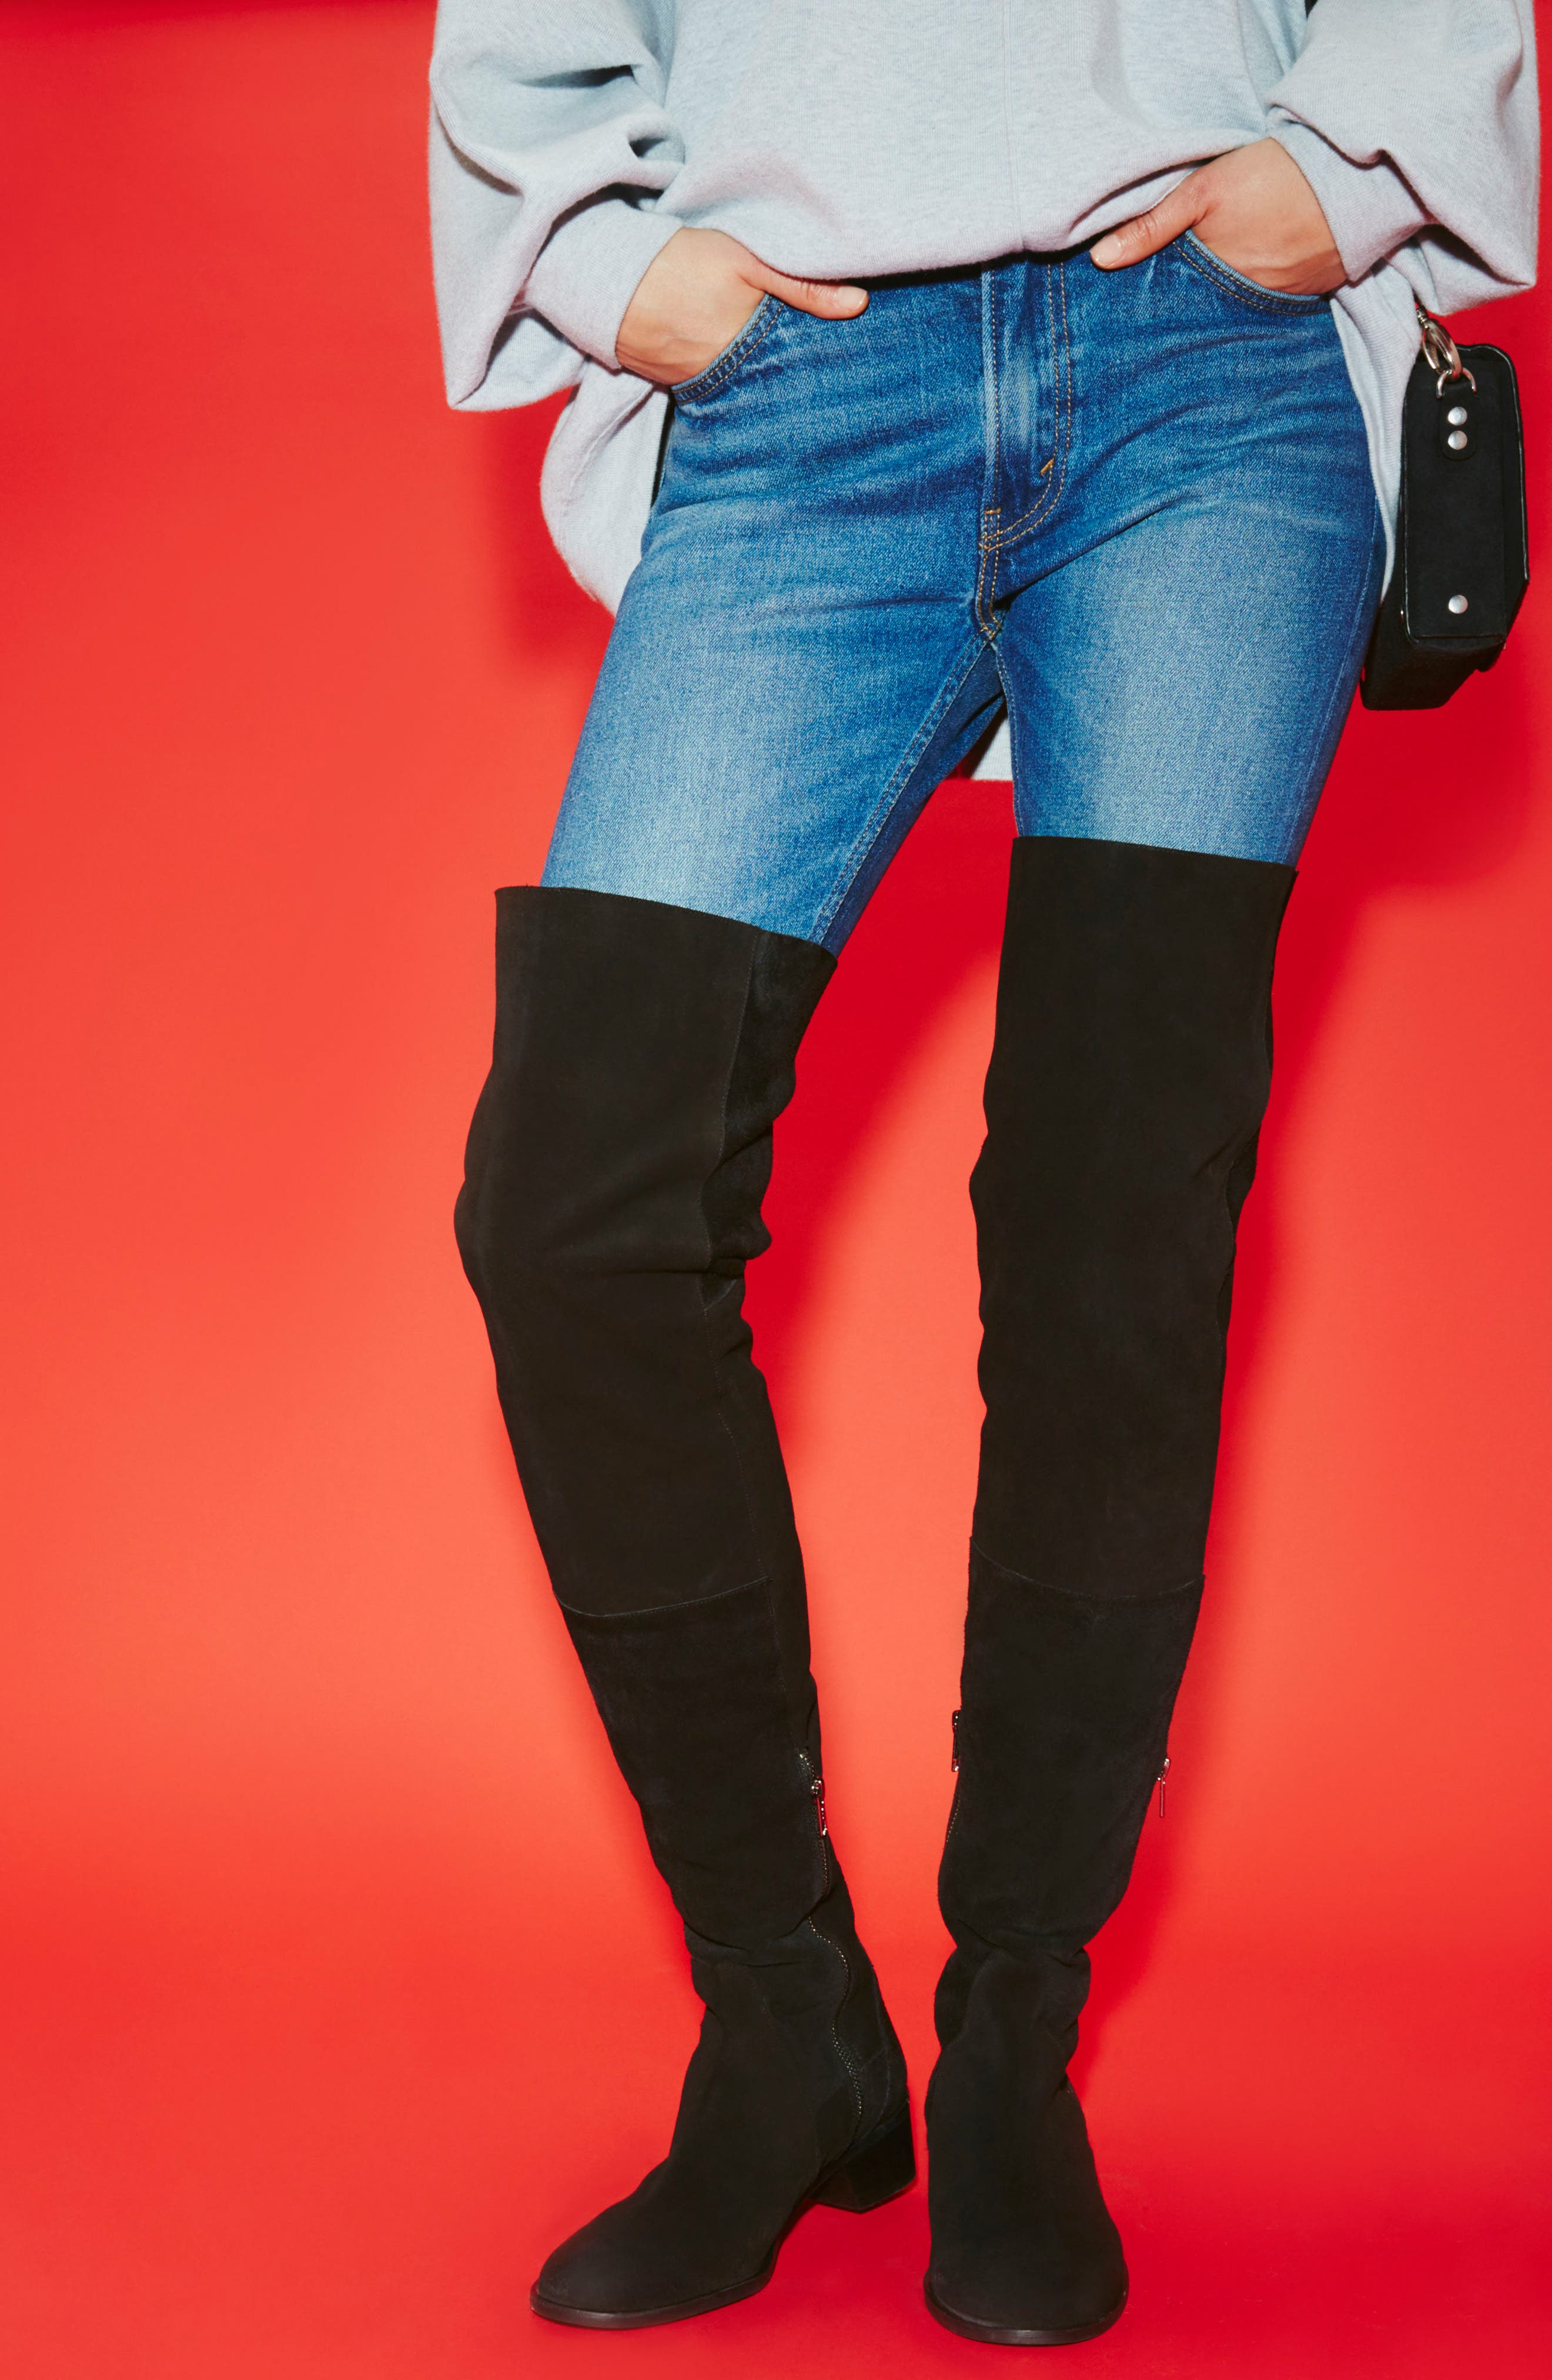 Everly Thigh High Boot,                             Alternate thumbnail 7, color,                             001